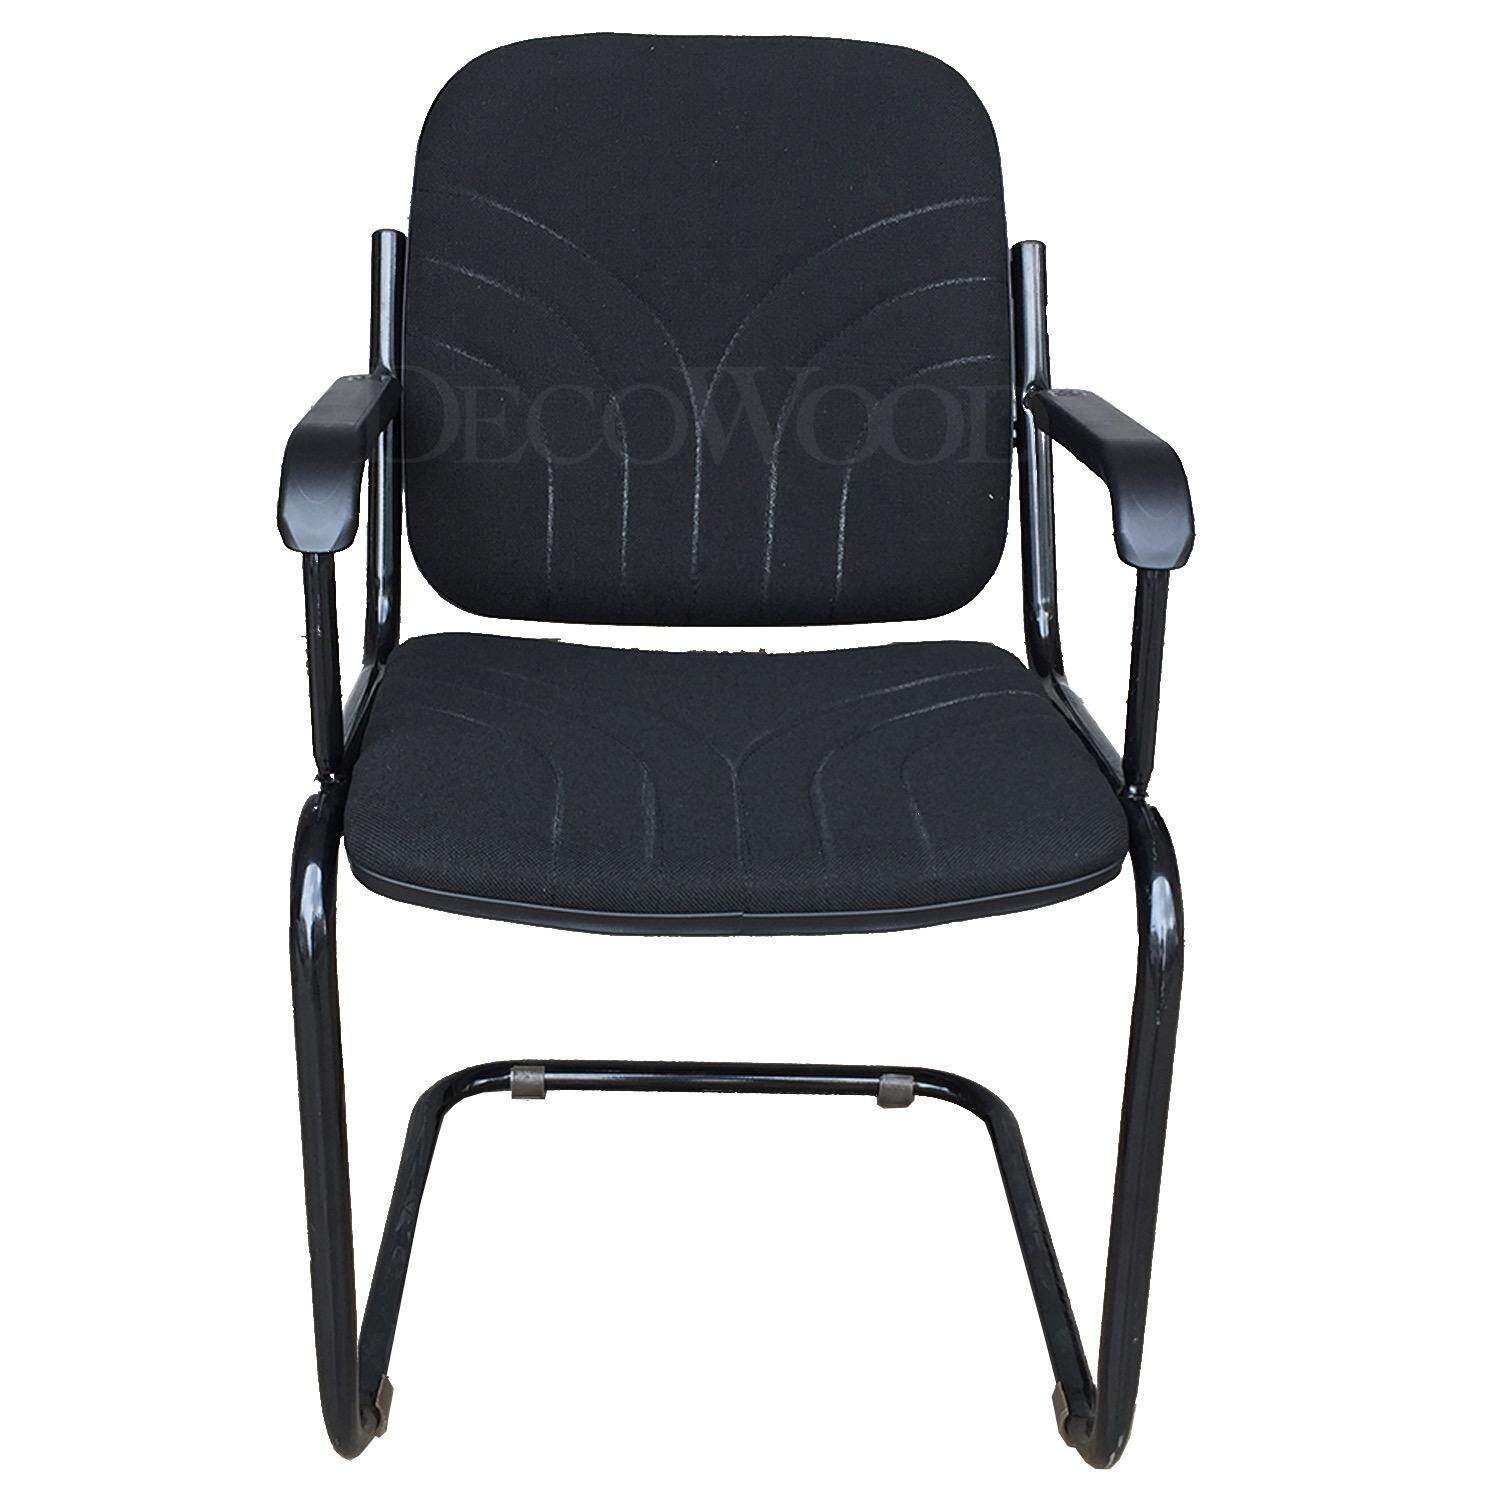 3V Office Chair With Backrest And Armrest Prosperity Chair Dining Chair Plastic Chair Outdoor Bench Chair Outdoor Chair Patio Chair Patio Bench Smoking Area Chair Resting Area Chair Staff Room Bench Waiting Chair Waiting Bench Lounge Chair Home Chair